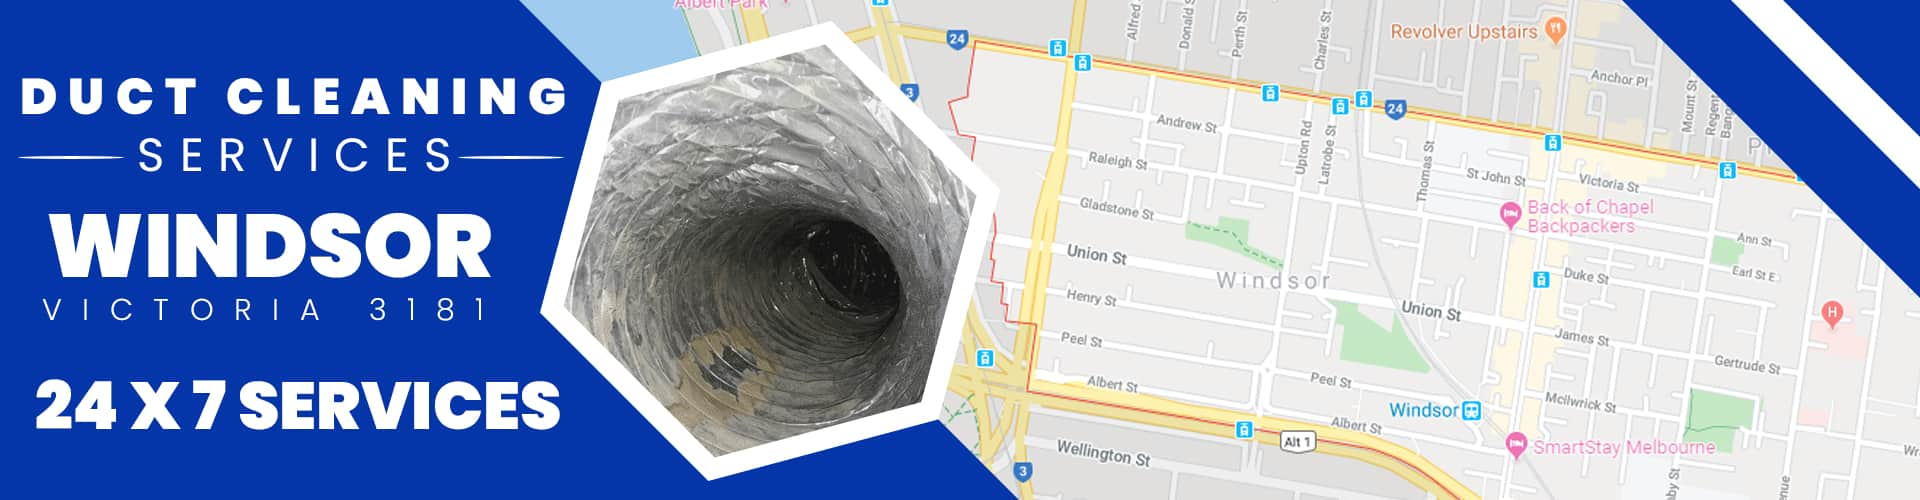 Duct Cleaning Windsor